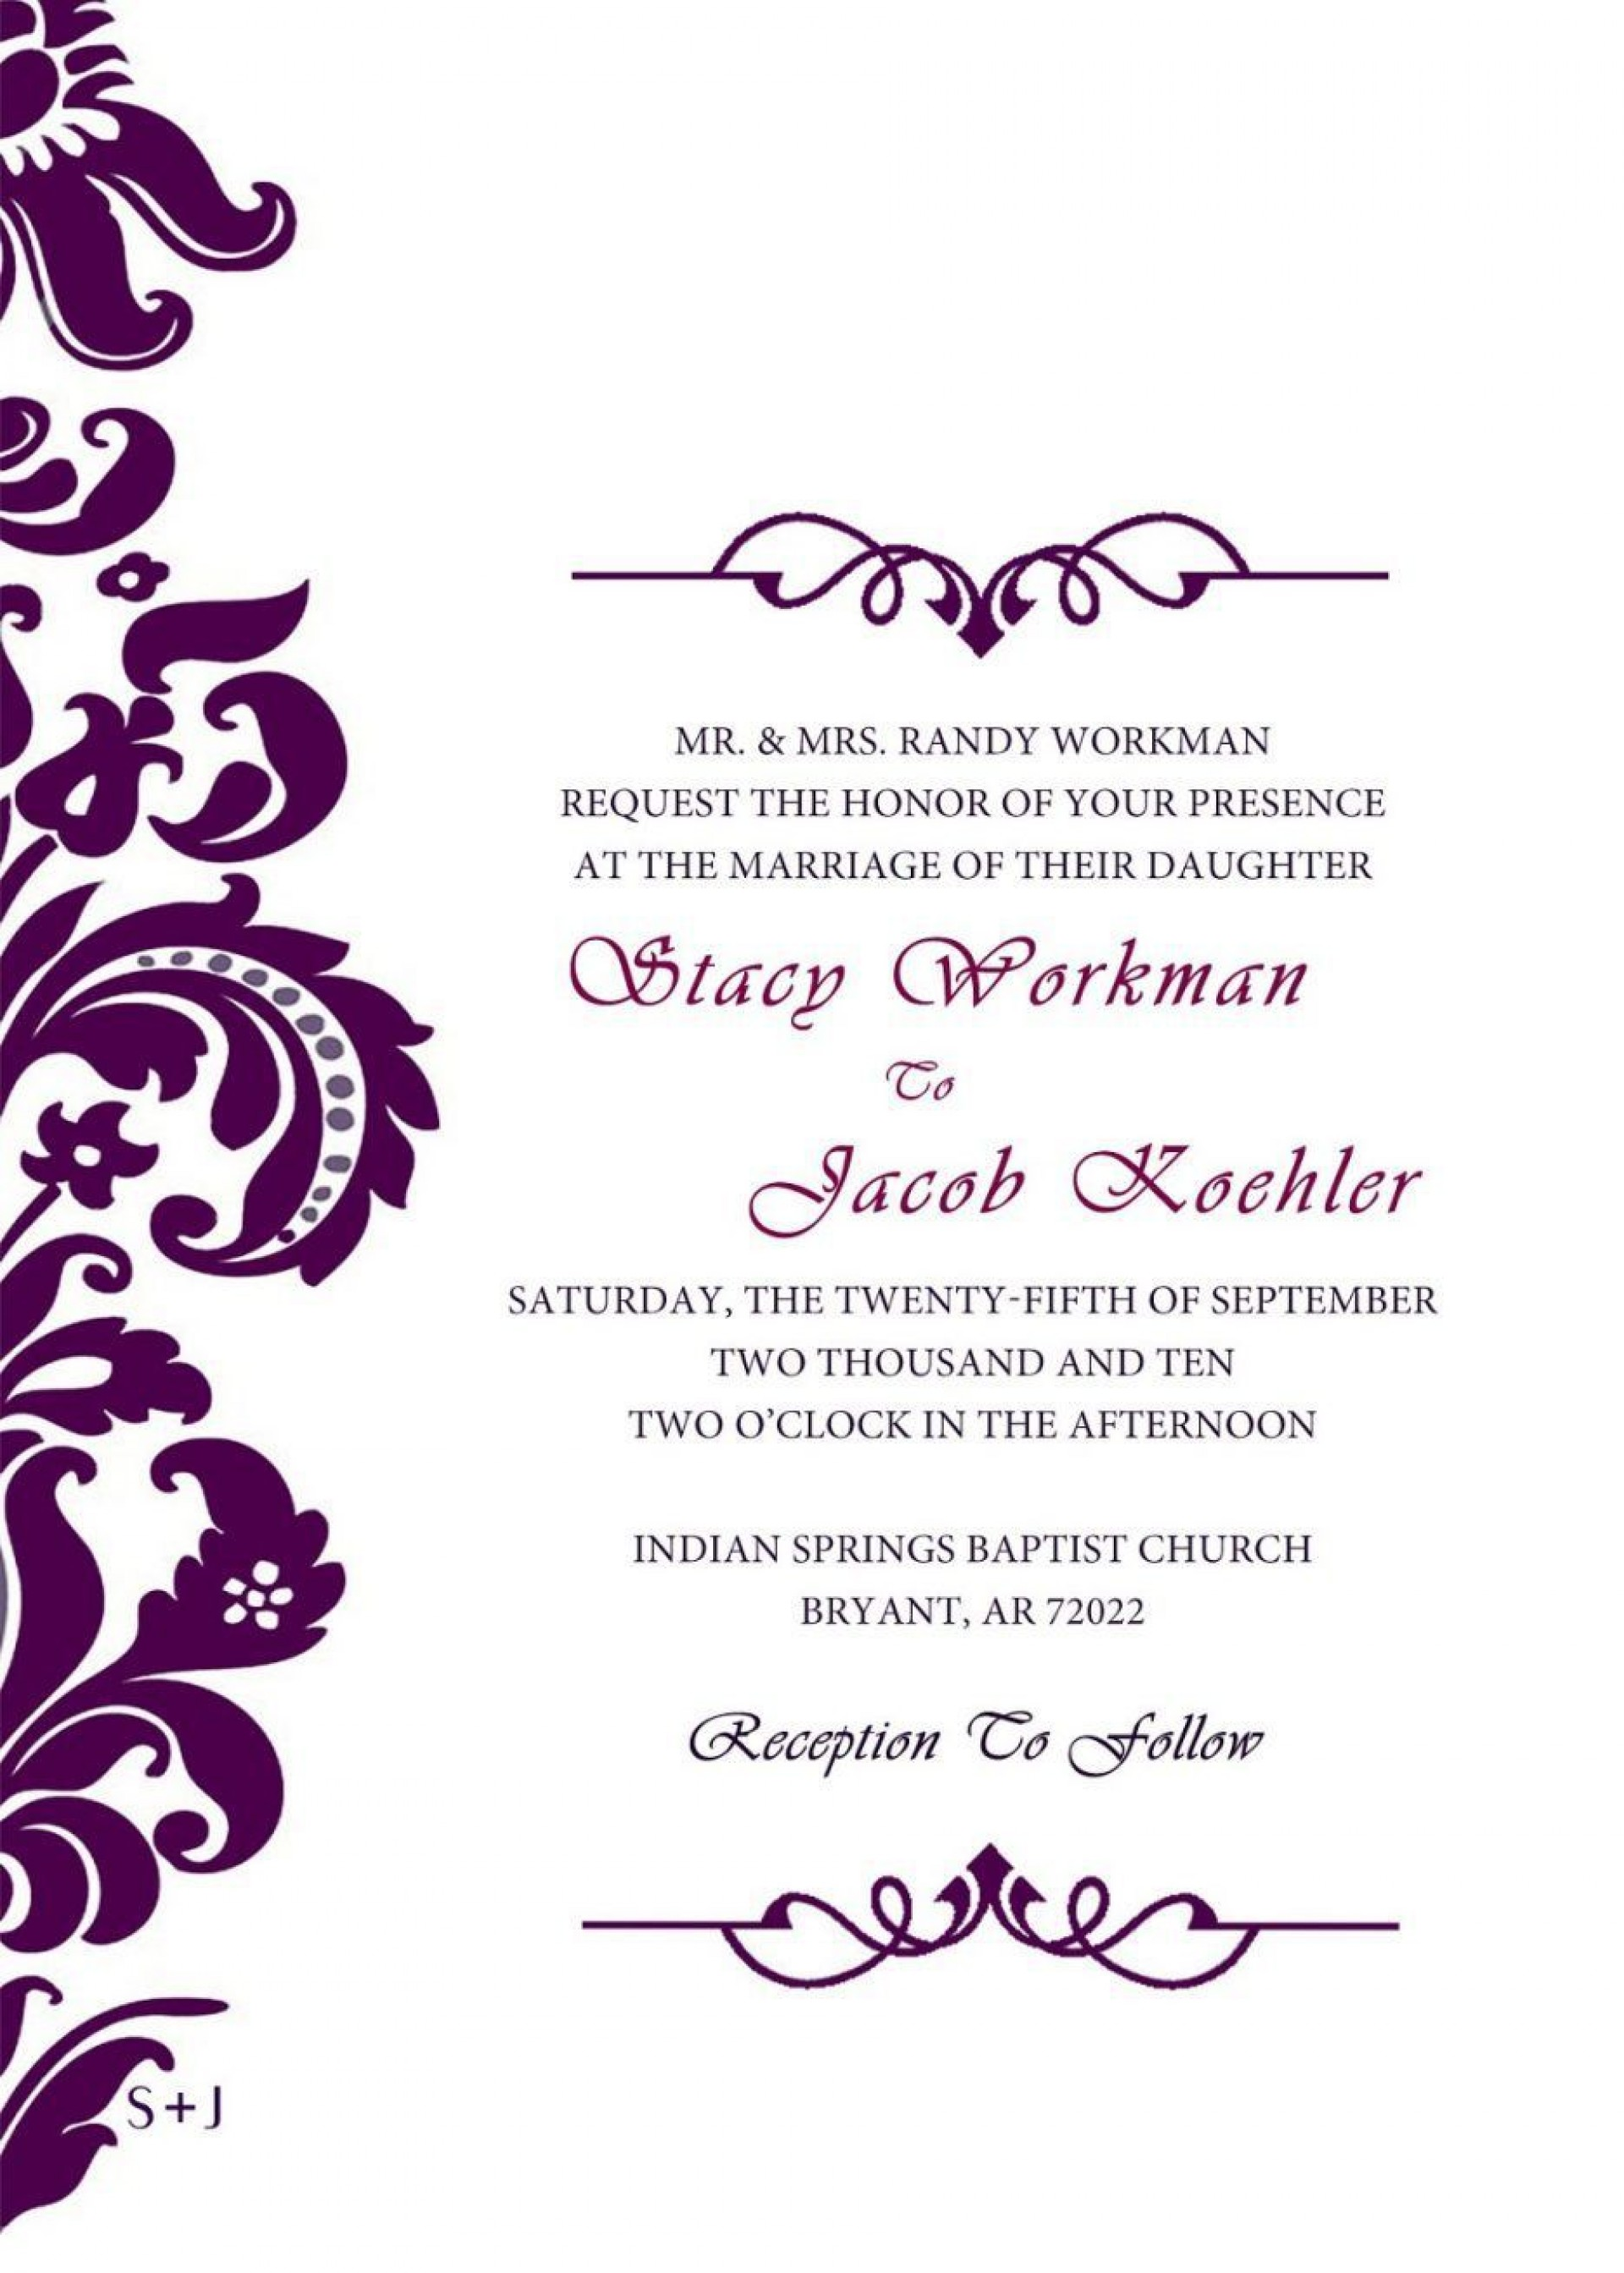 004 Wonderful Formal Wedding Invitation Template High Definition  Templates Email Format Wording Free1920